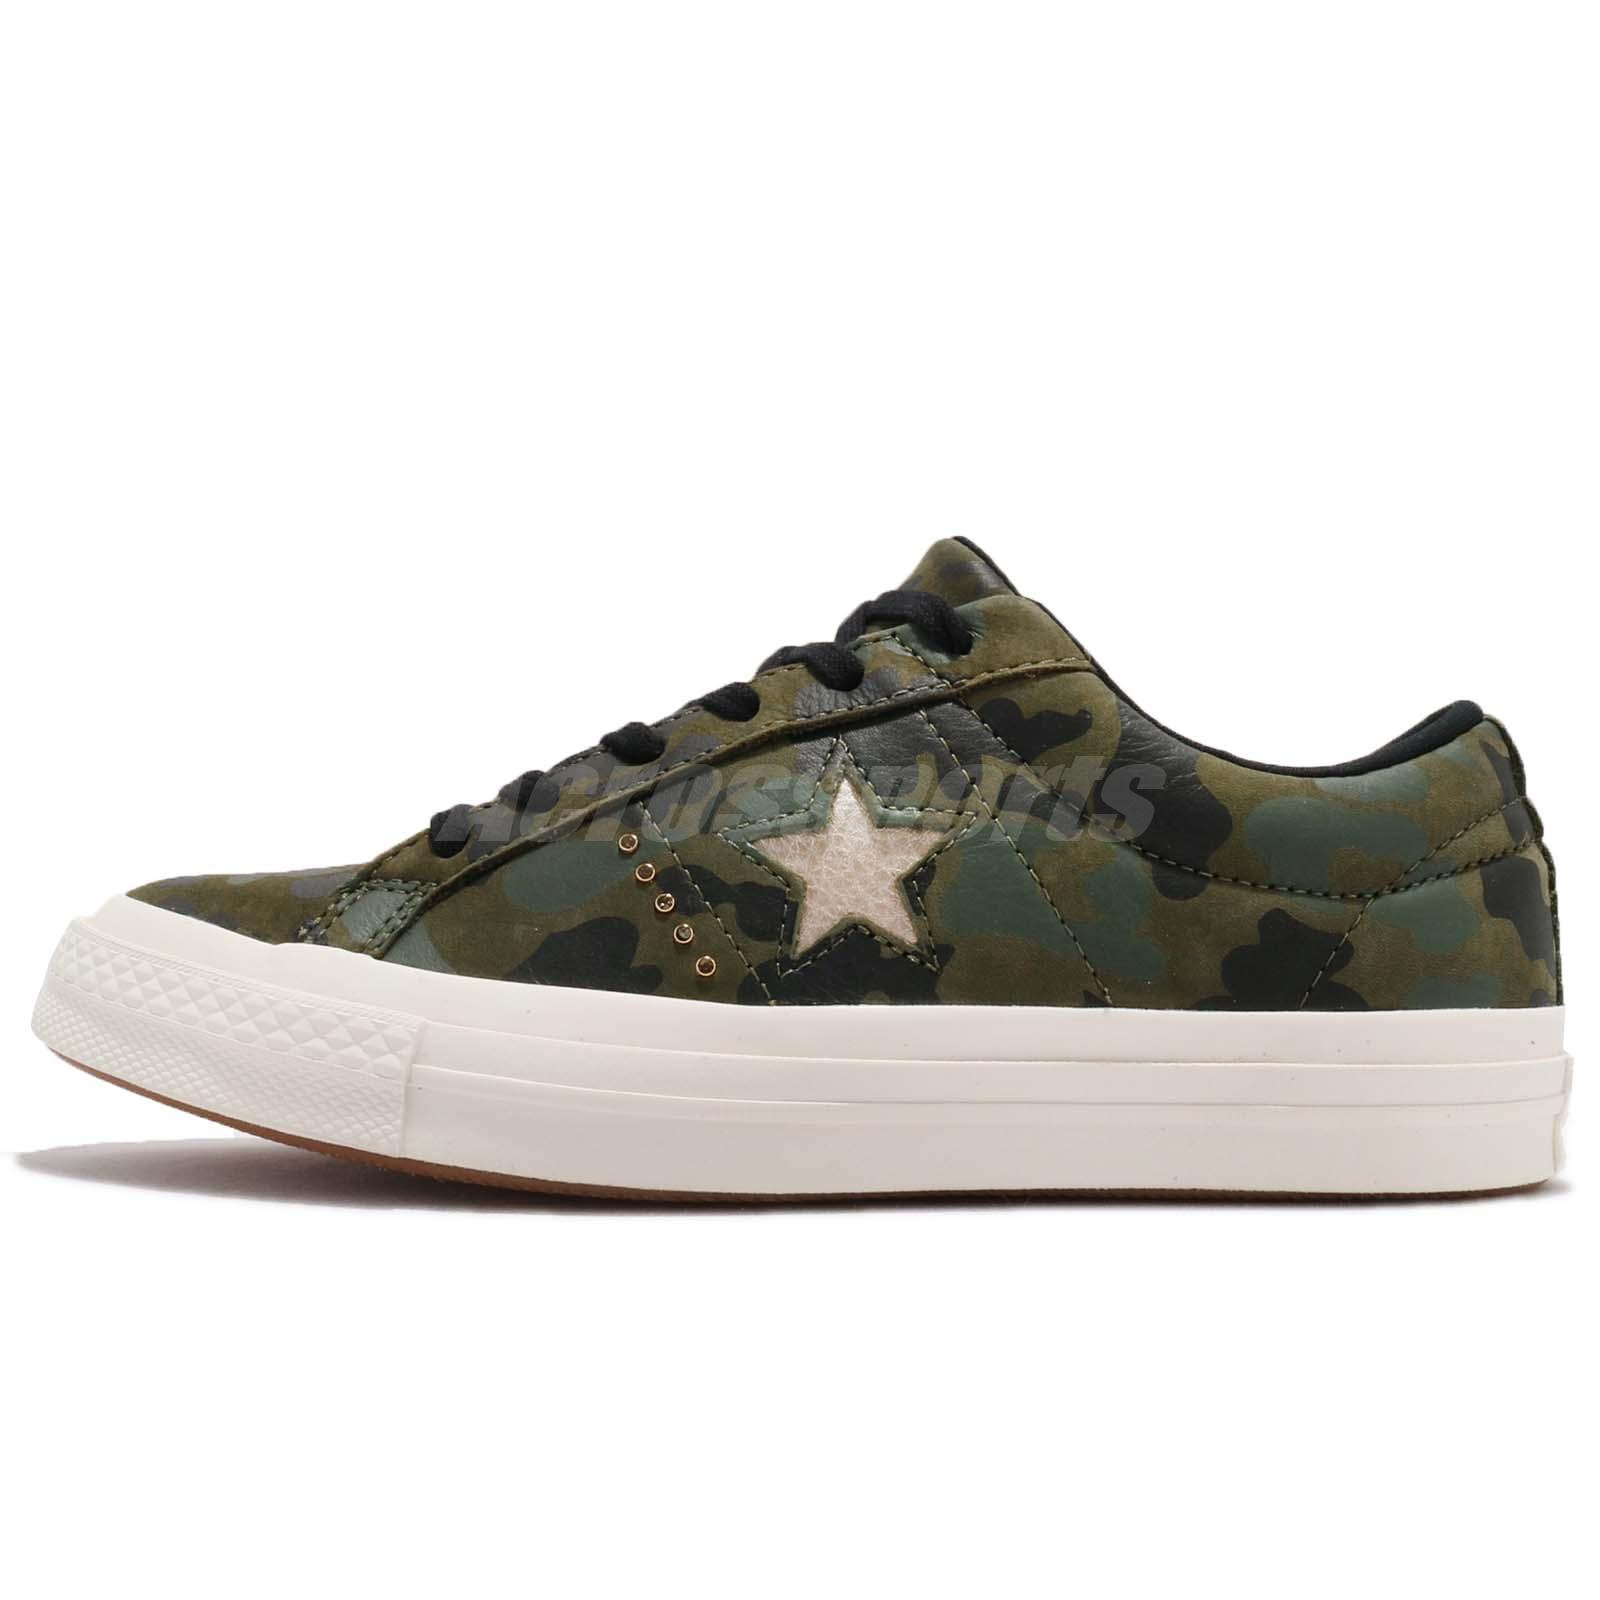 About Camo Converse Green White Details Sneakers Trainers Men Star Shoes 159703c One NP8XwOkn0